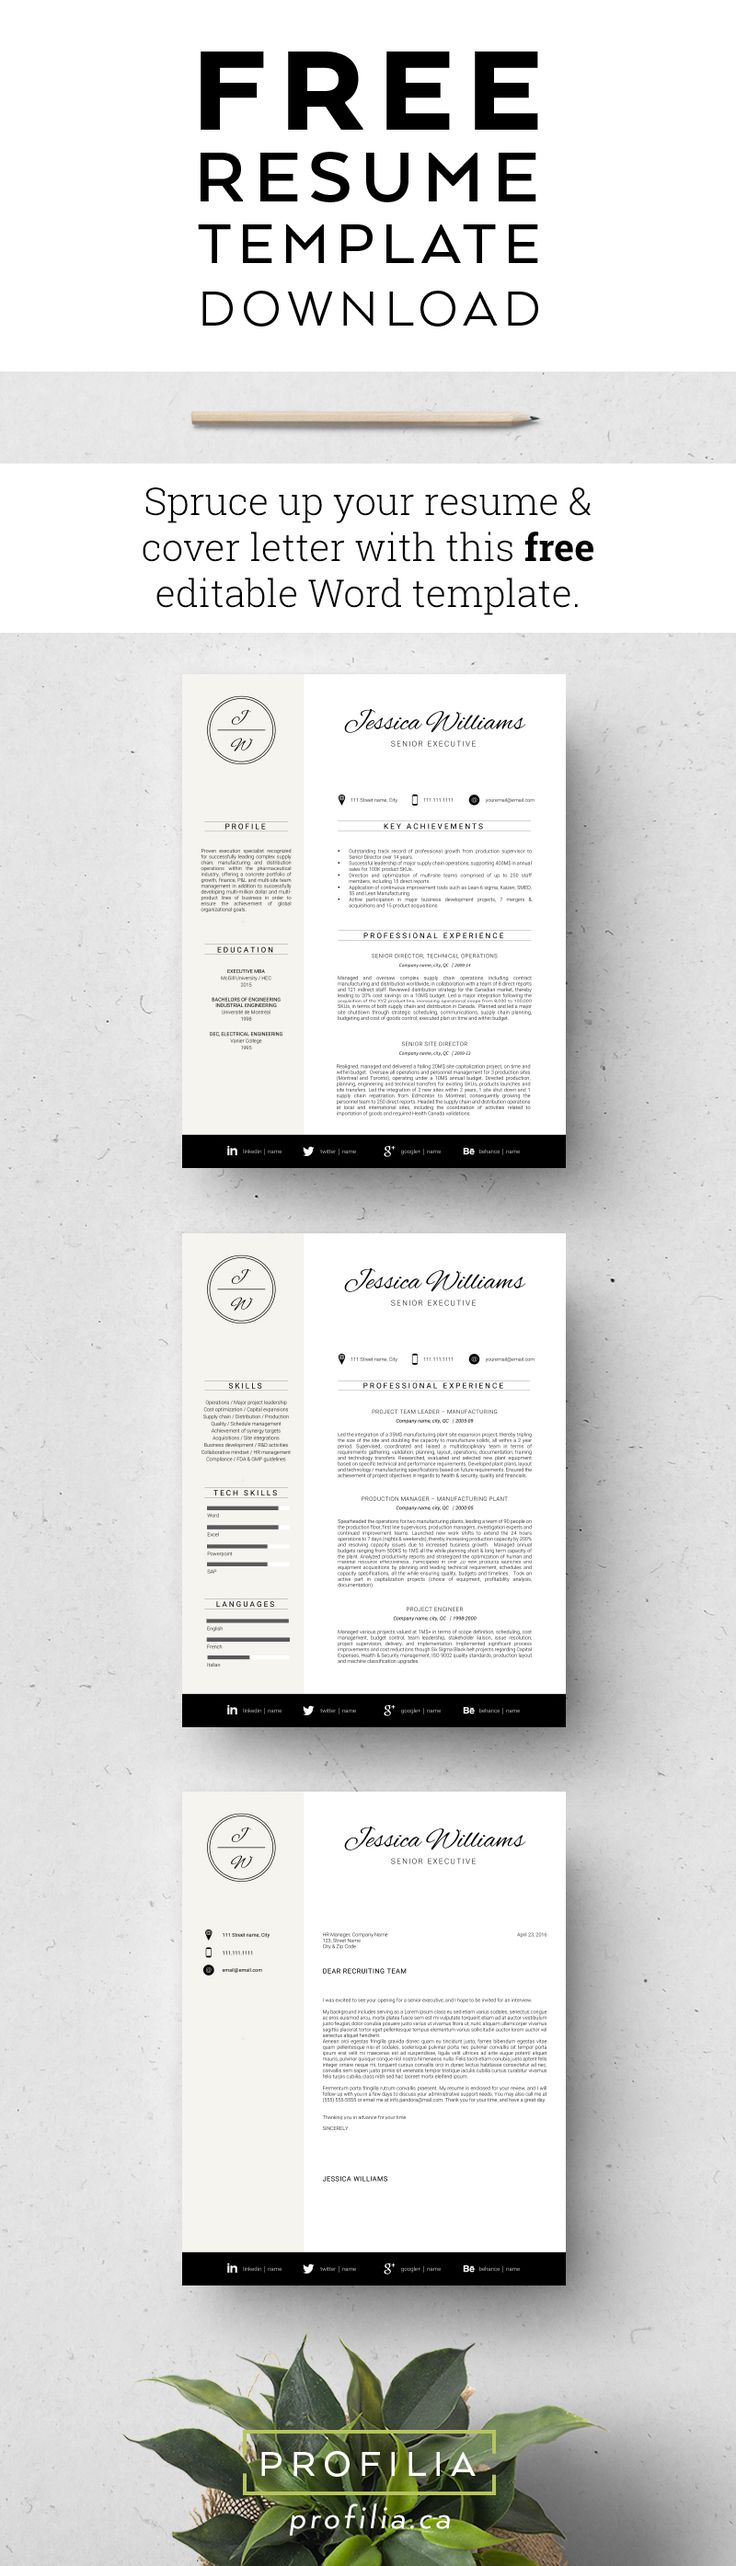 best 25 job cover letter ideas on pinterest cover letter example writing a cv and cover letter for job - Free Cover Letter For Resume Template